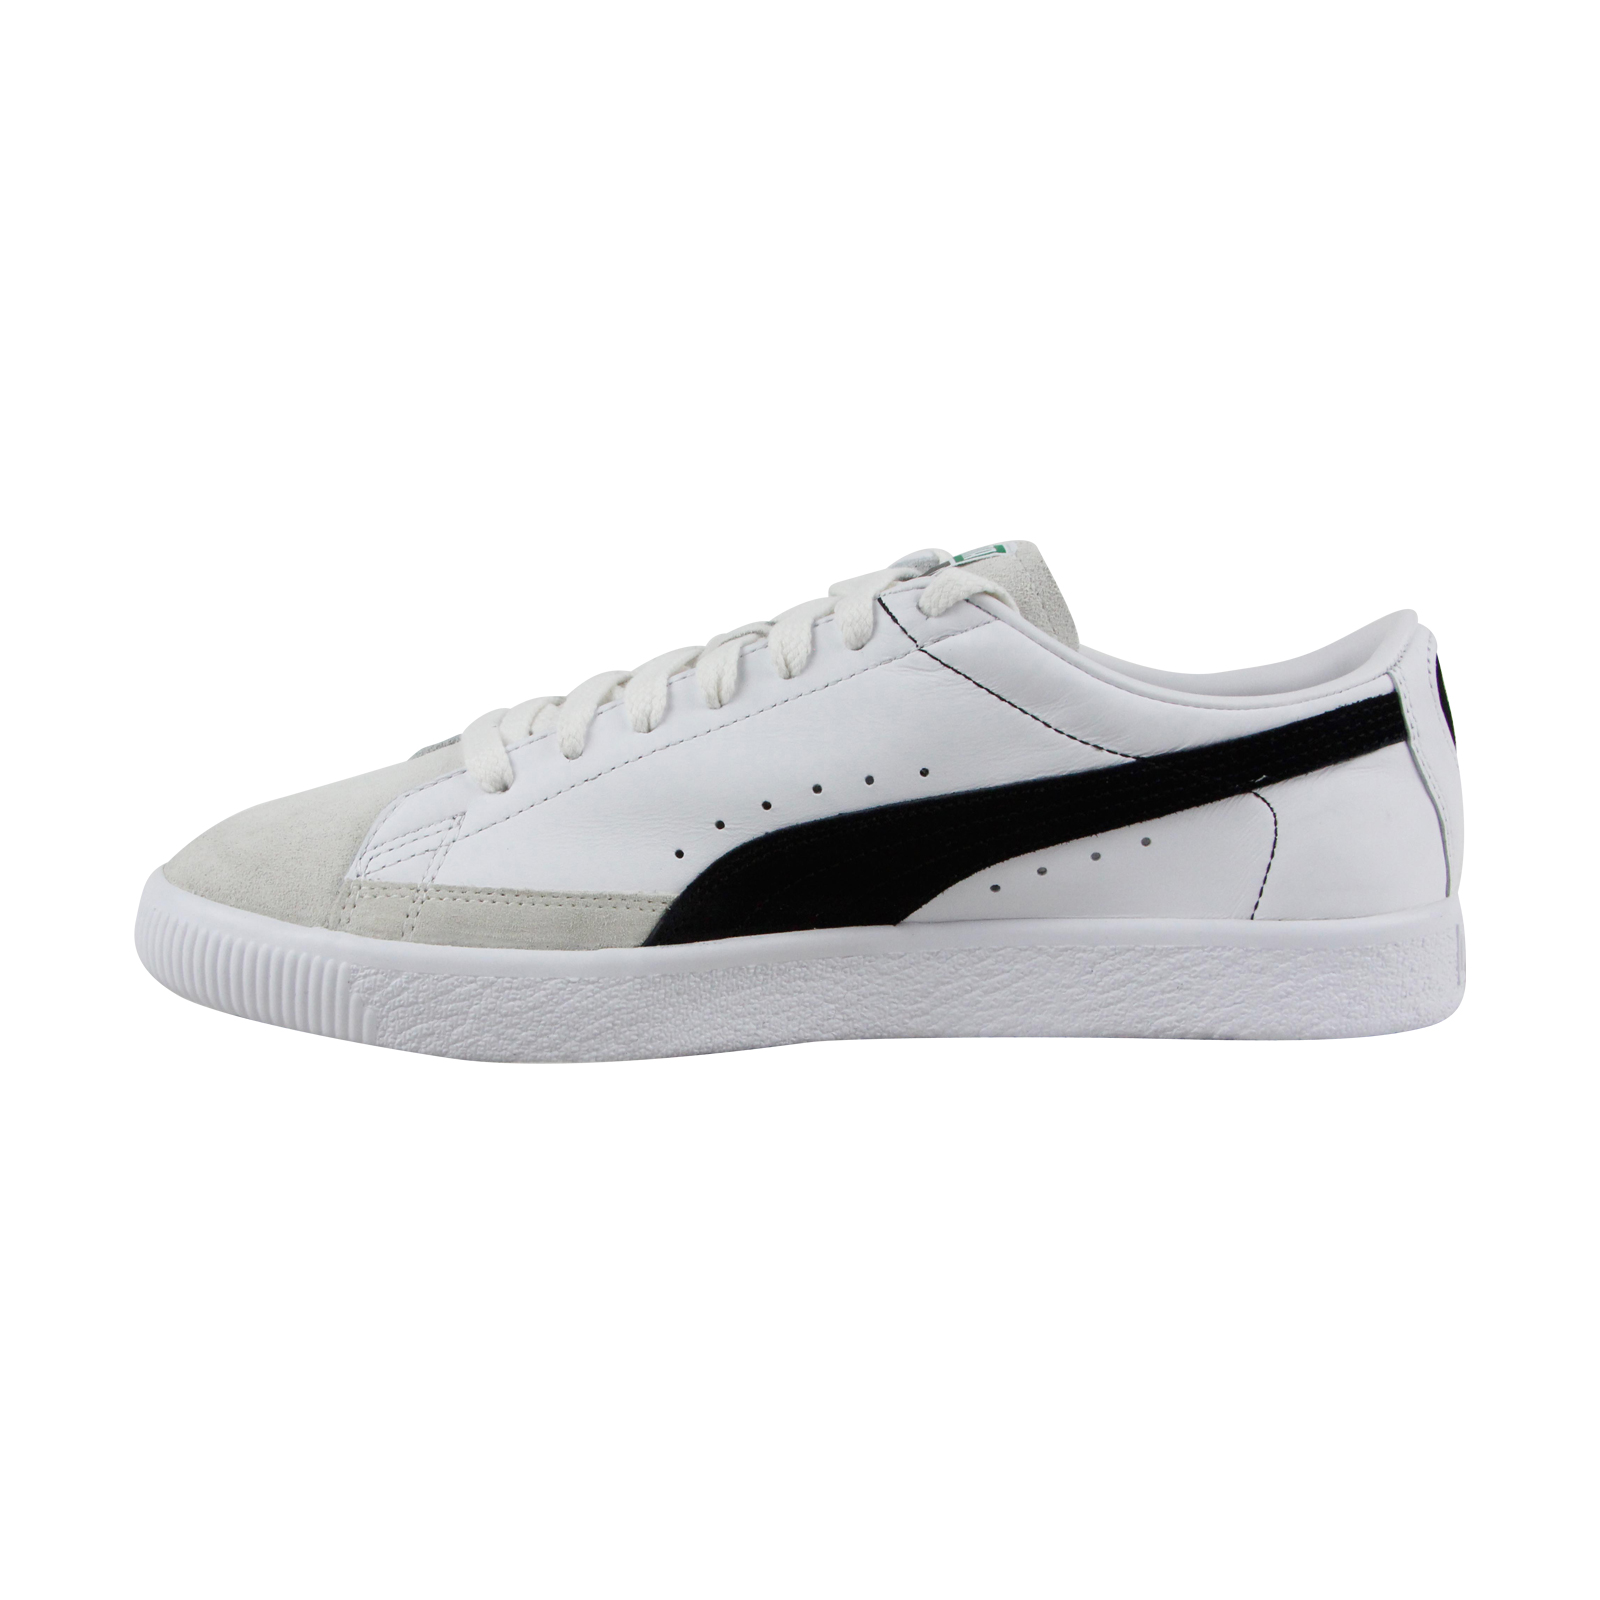 Puma Basket 90680 Hombre Blanco Blanco Hombre Leather Lace Up Sneakers Zapatos 4c8259